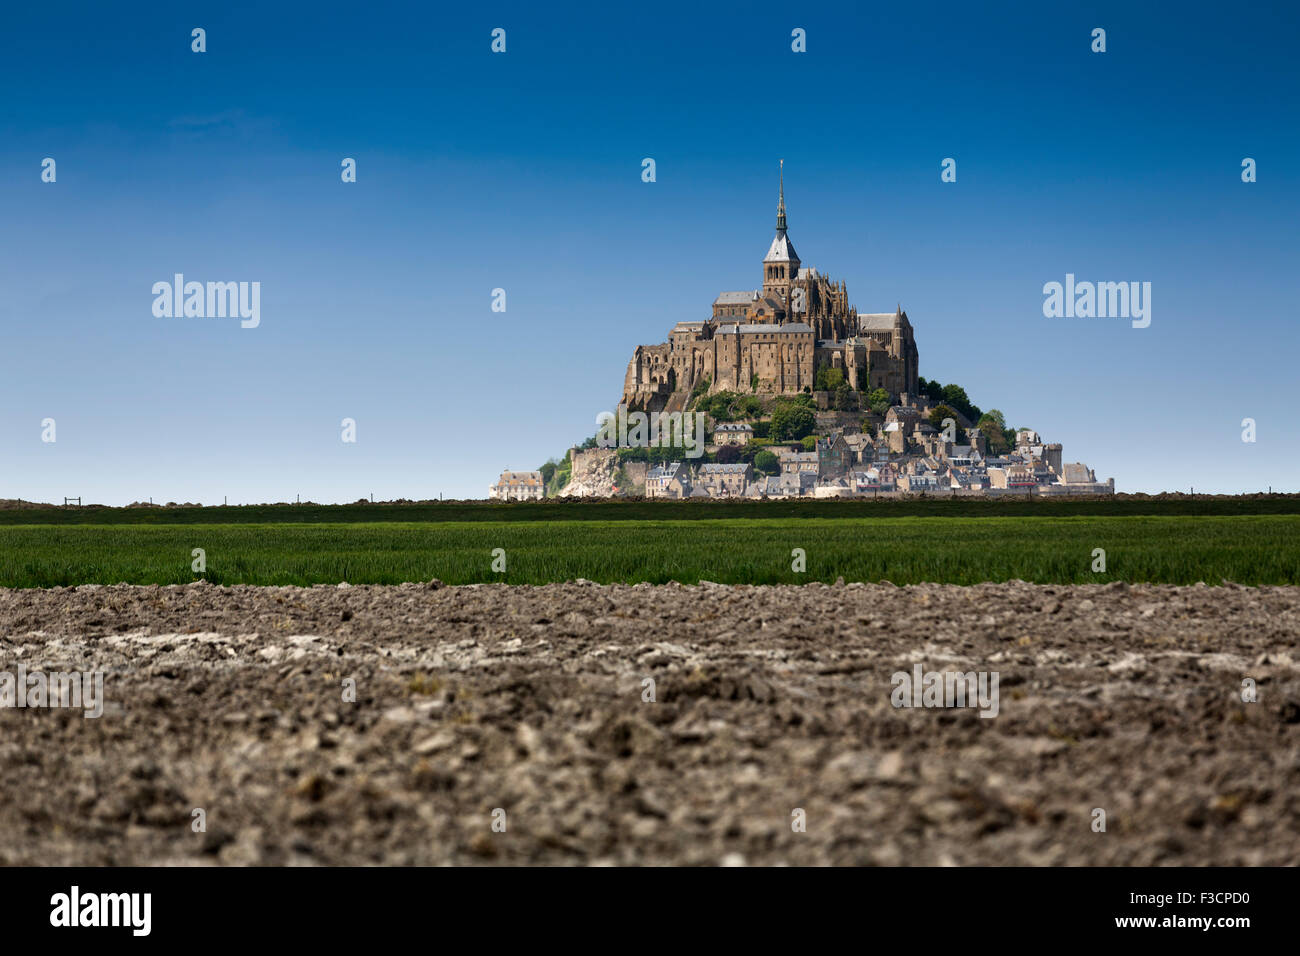 Le Mont-Saint-Michel Mont Saint Michel abbaye bénédictine Basse-normandie Manche France Europe Photo Stock